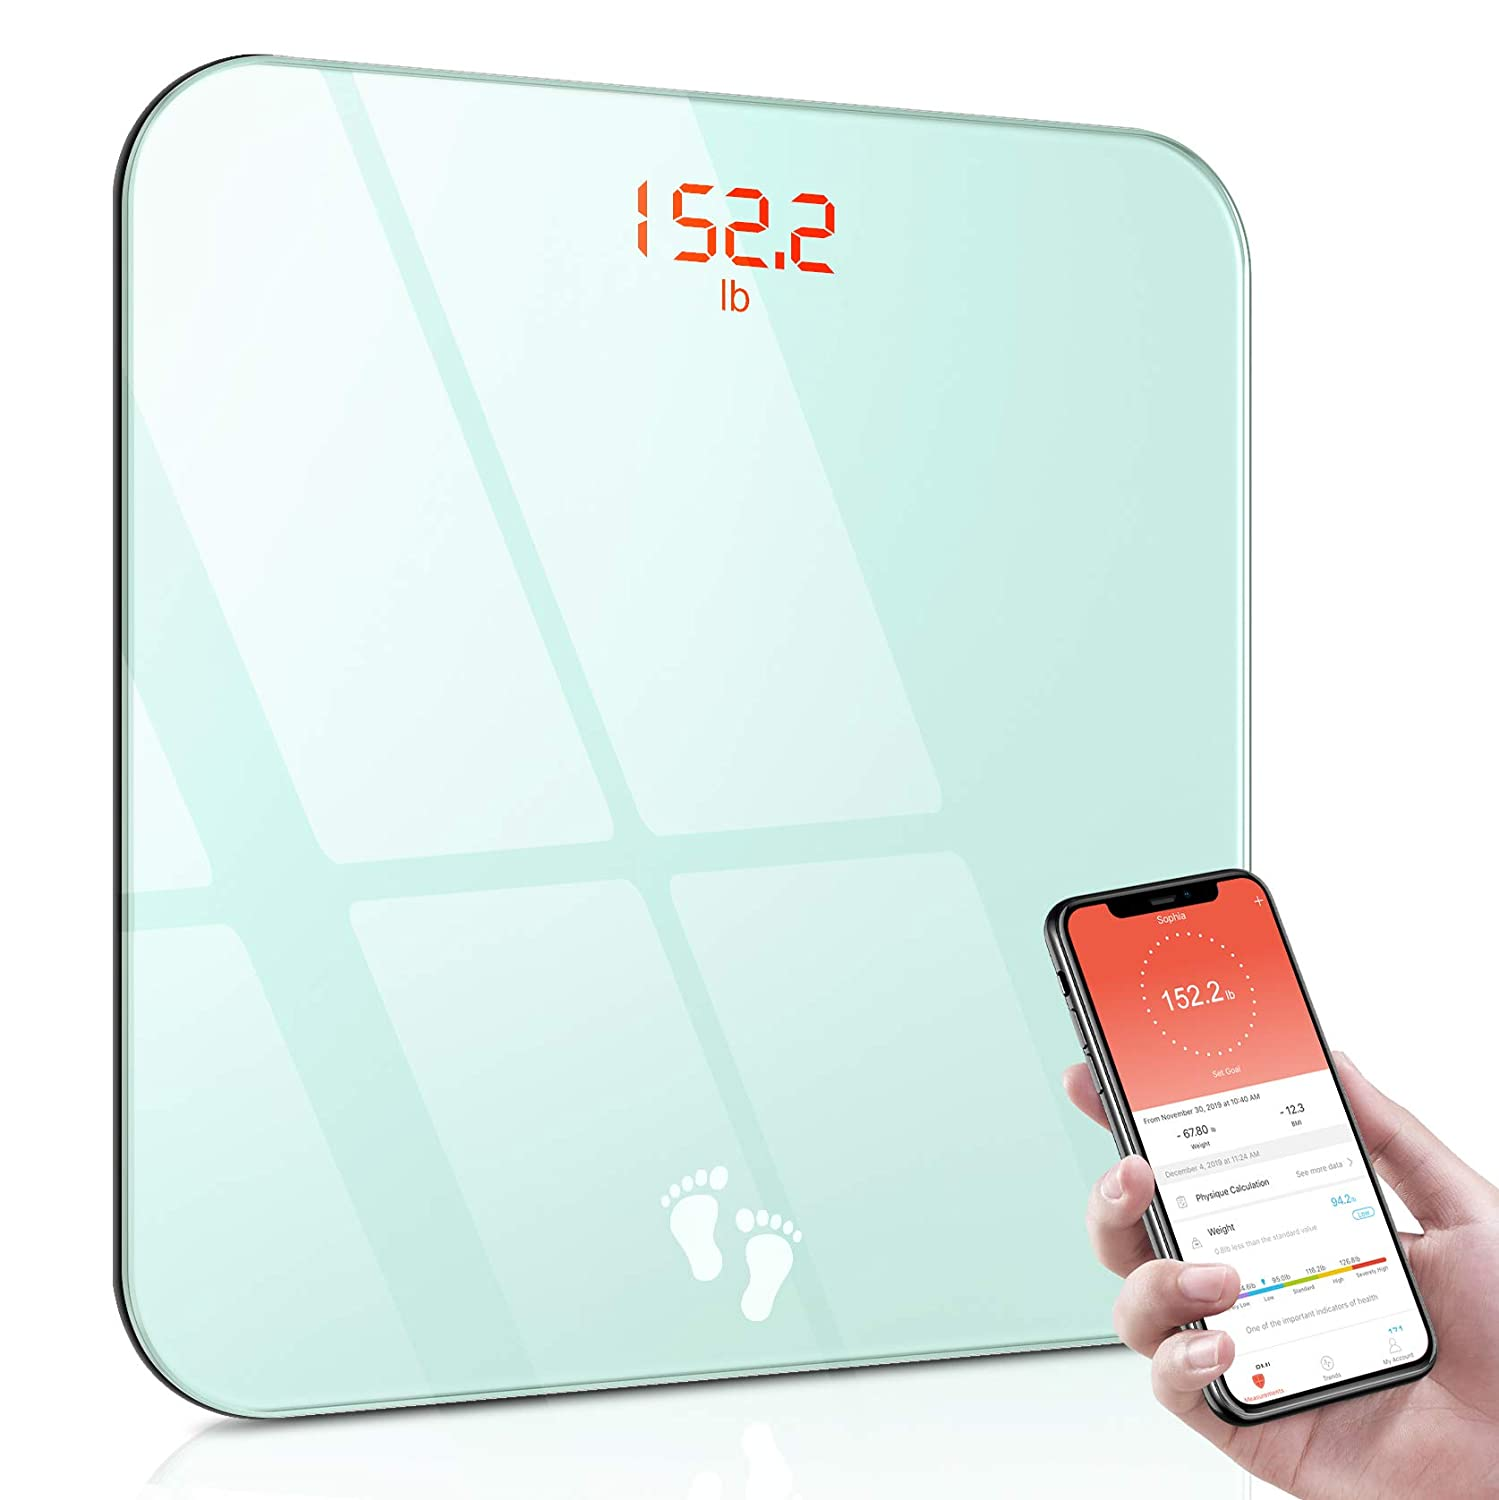 Matone Digital Scale for Body Weight, Smart Bluetooth Bathroom Scale with Smartphone App & Easy-to-Read Backlit LED Display, BMI Weight Scale, Step-on Technology, Sturdy Tempered Glass, 400 lbs